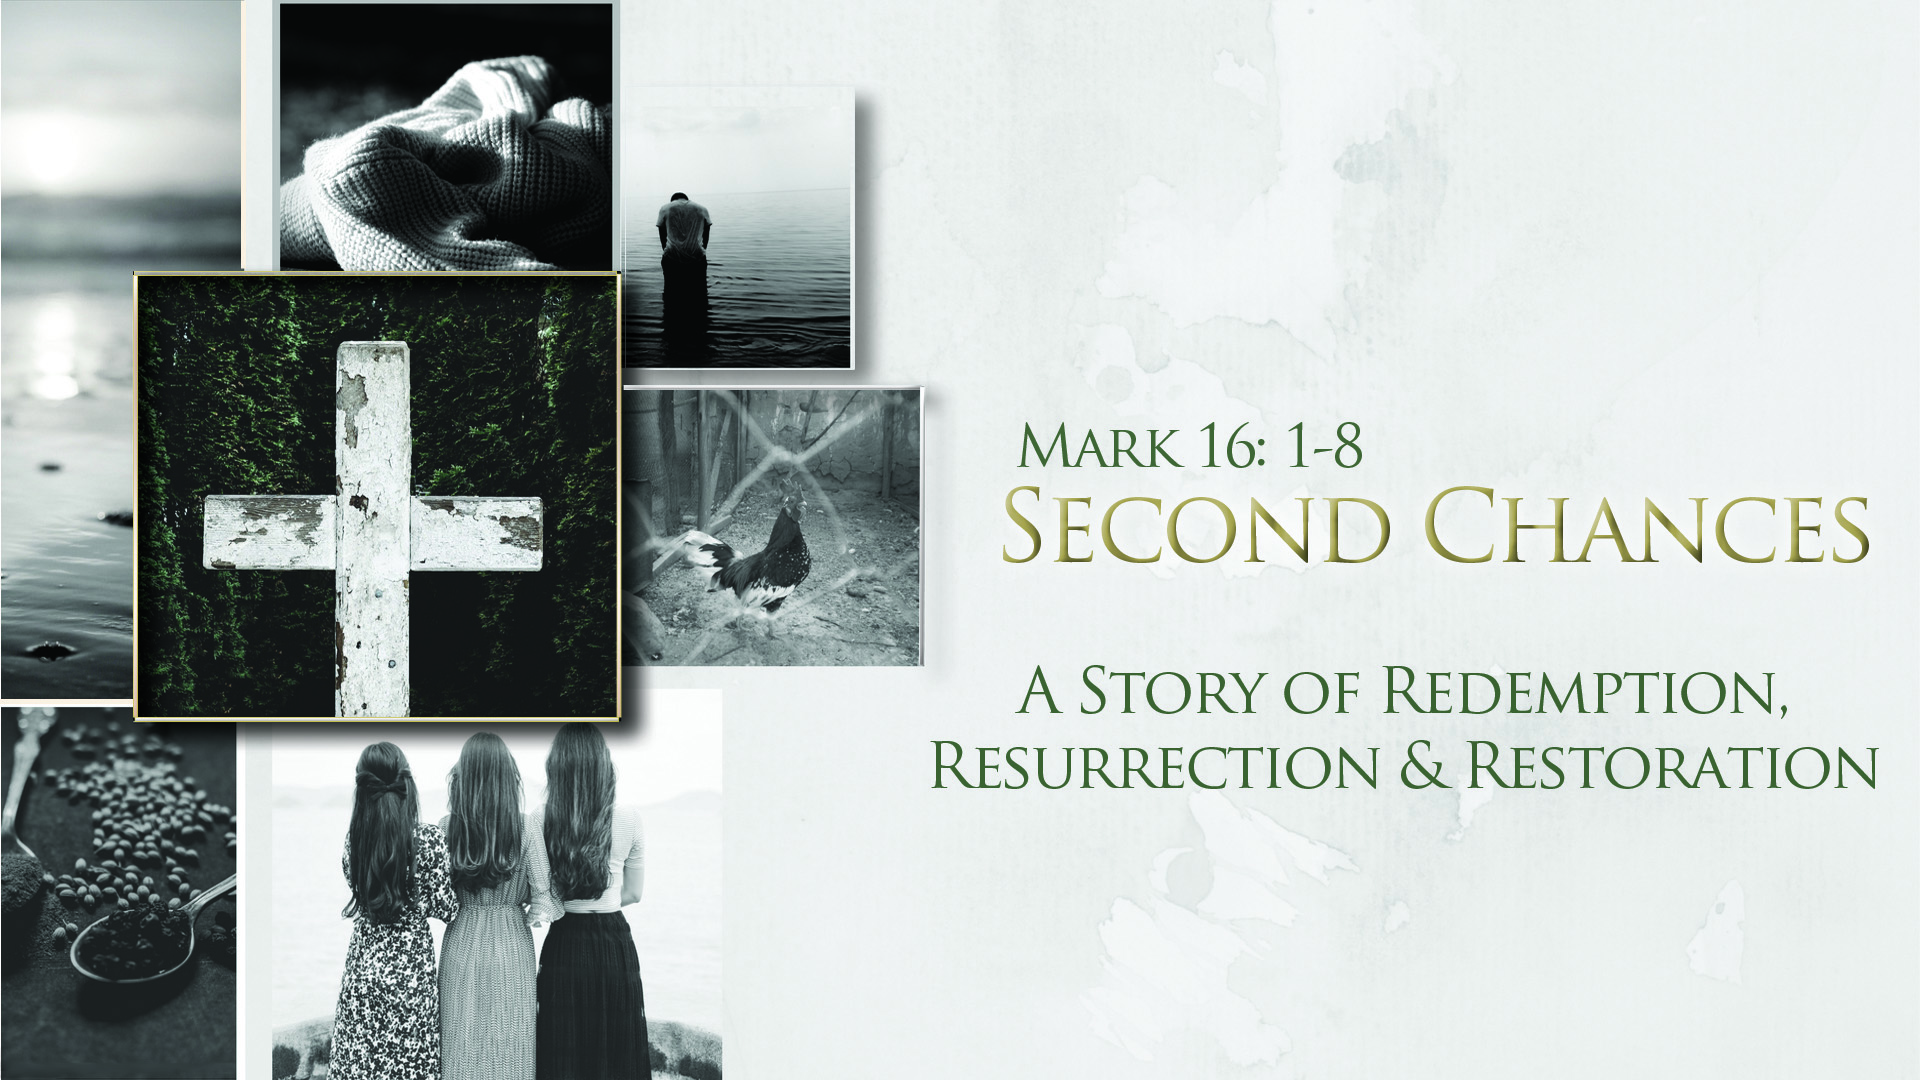 Second Chances – A Story of Redemption, Resurrection & Restoration (4/1/18)